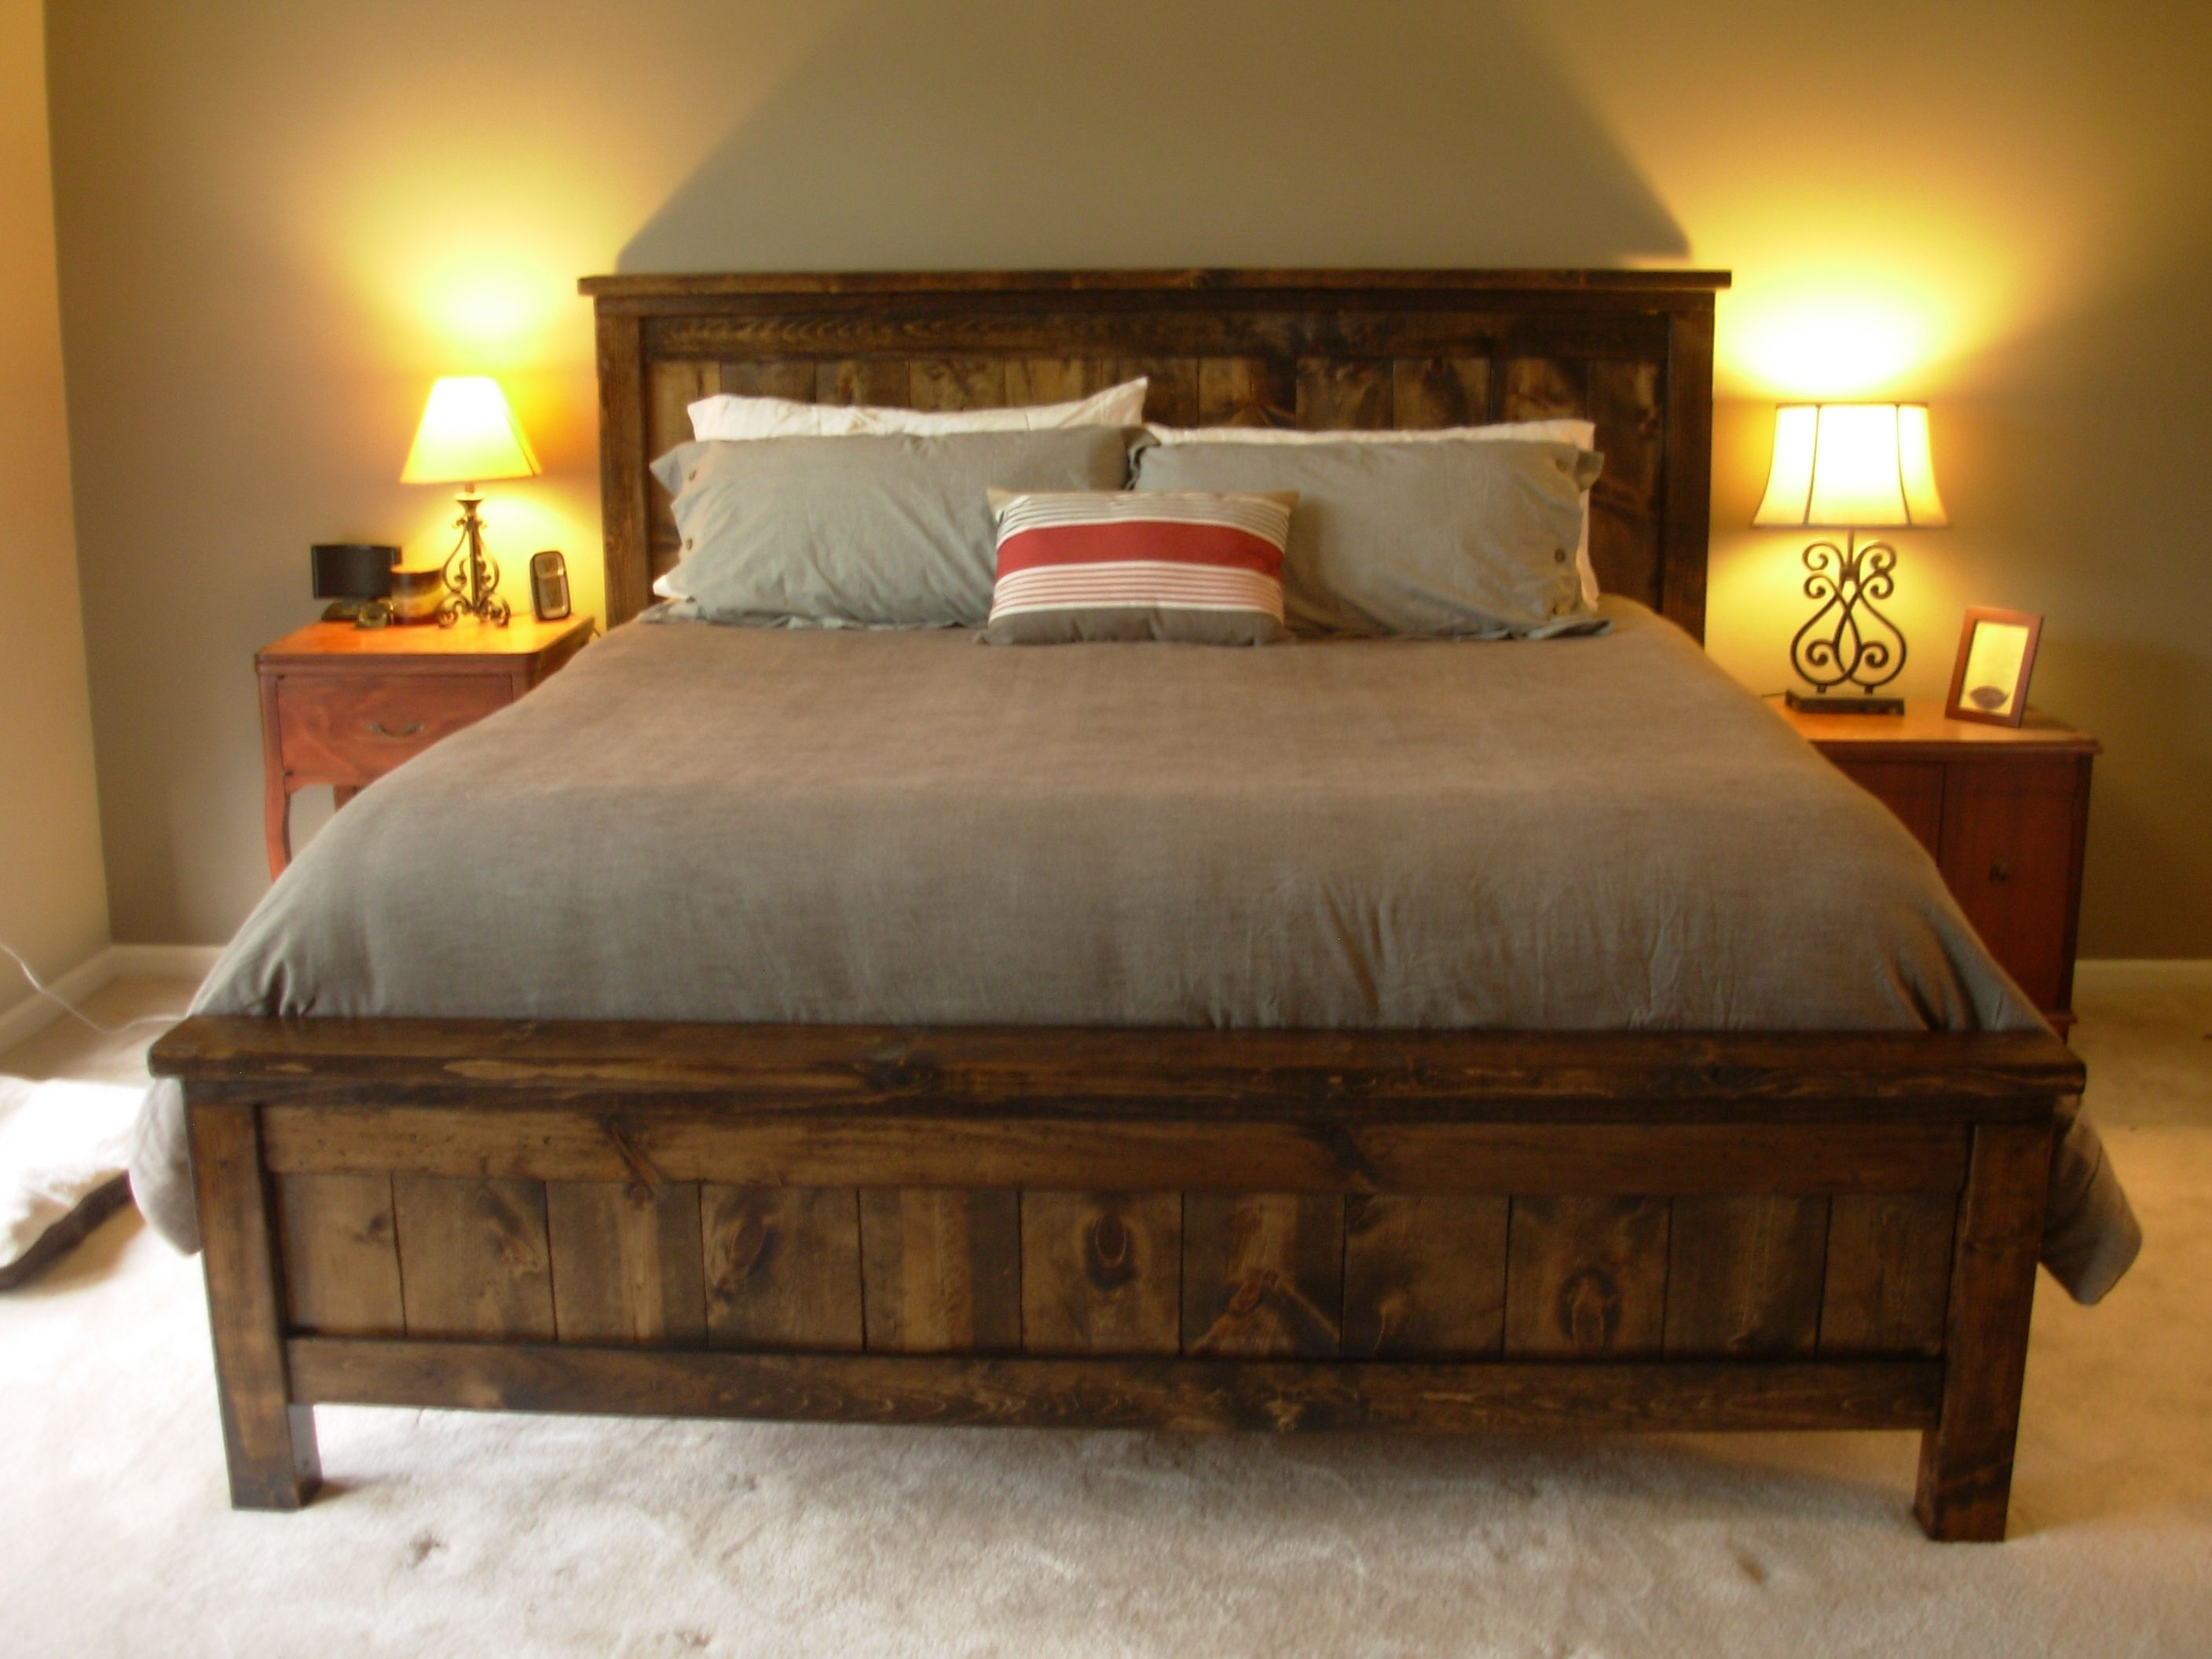 Our farmhouse bed (adapted from ana white's plans